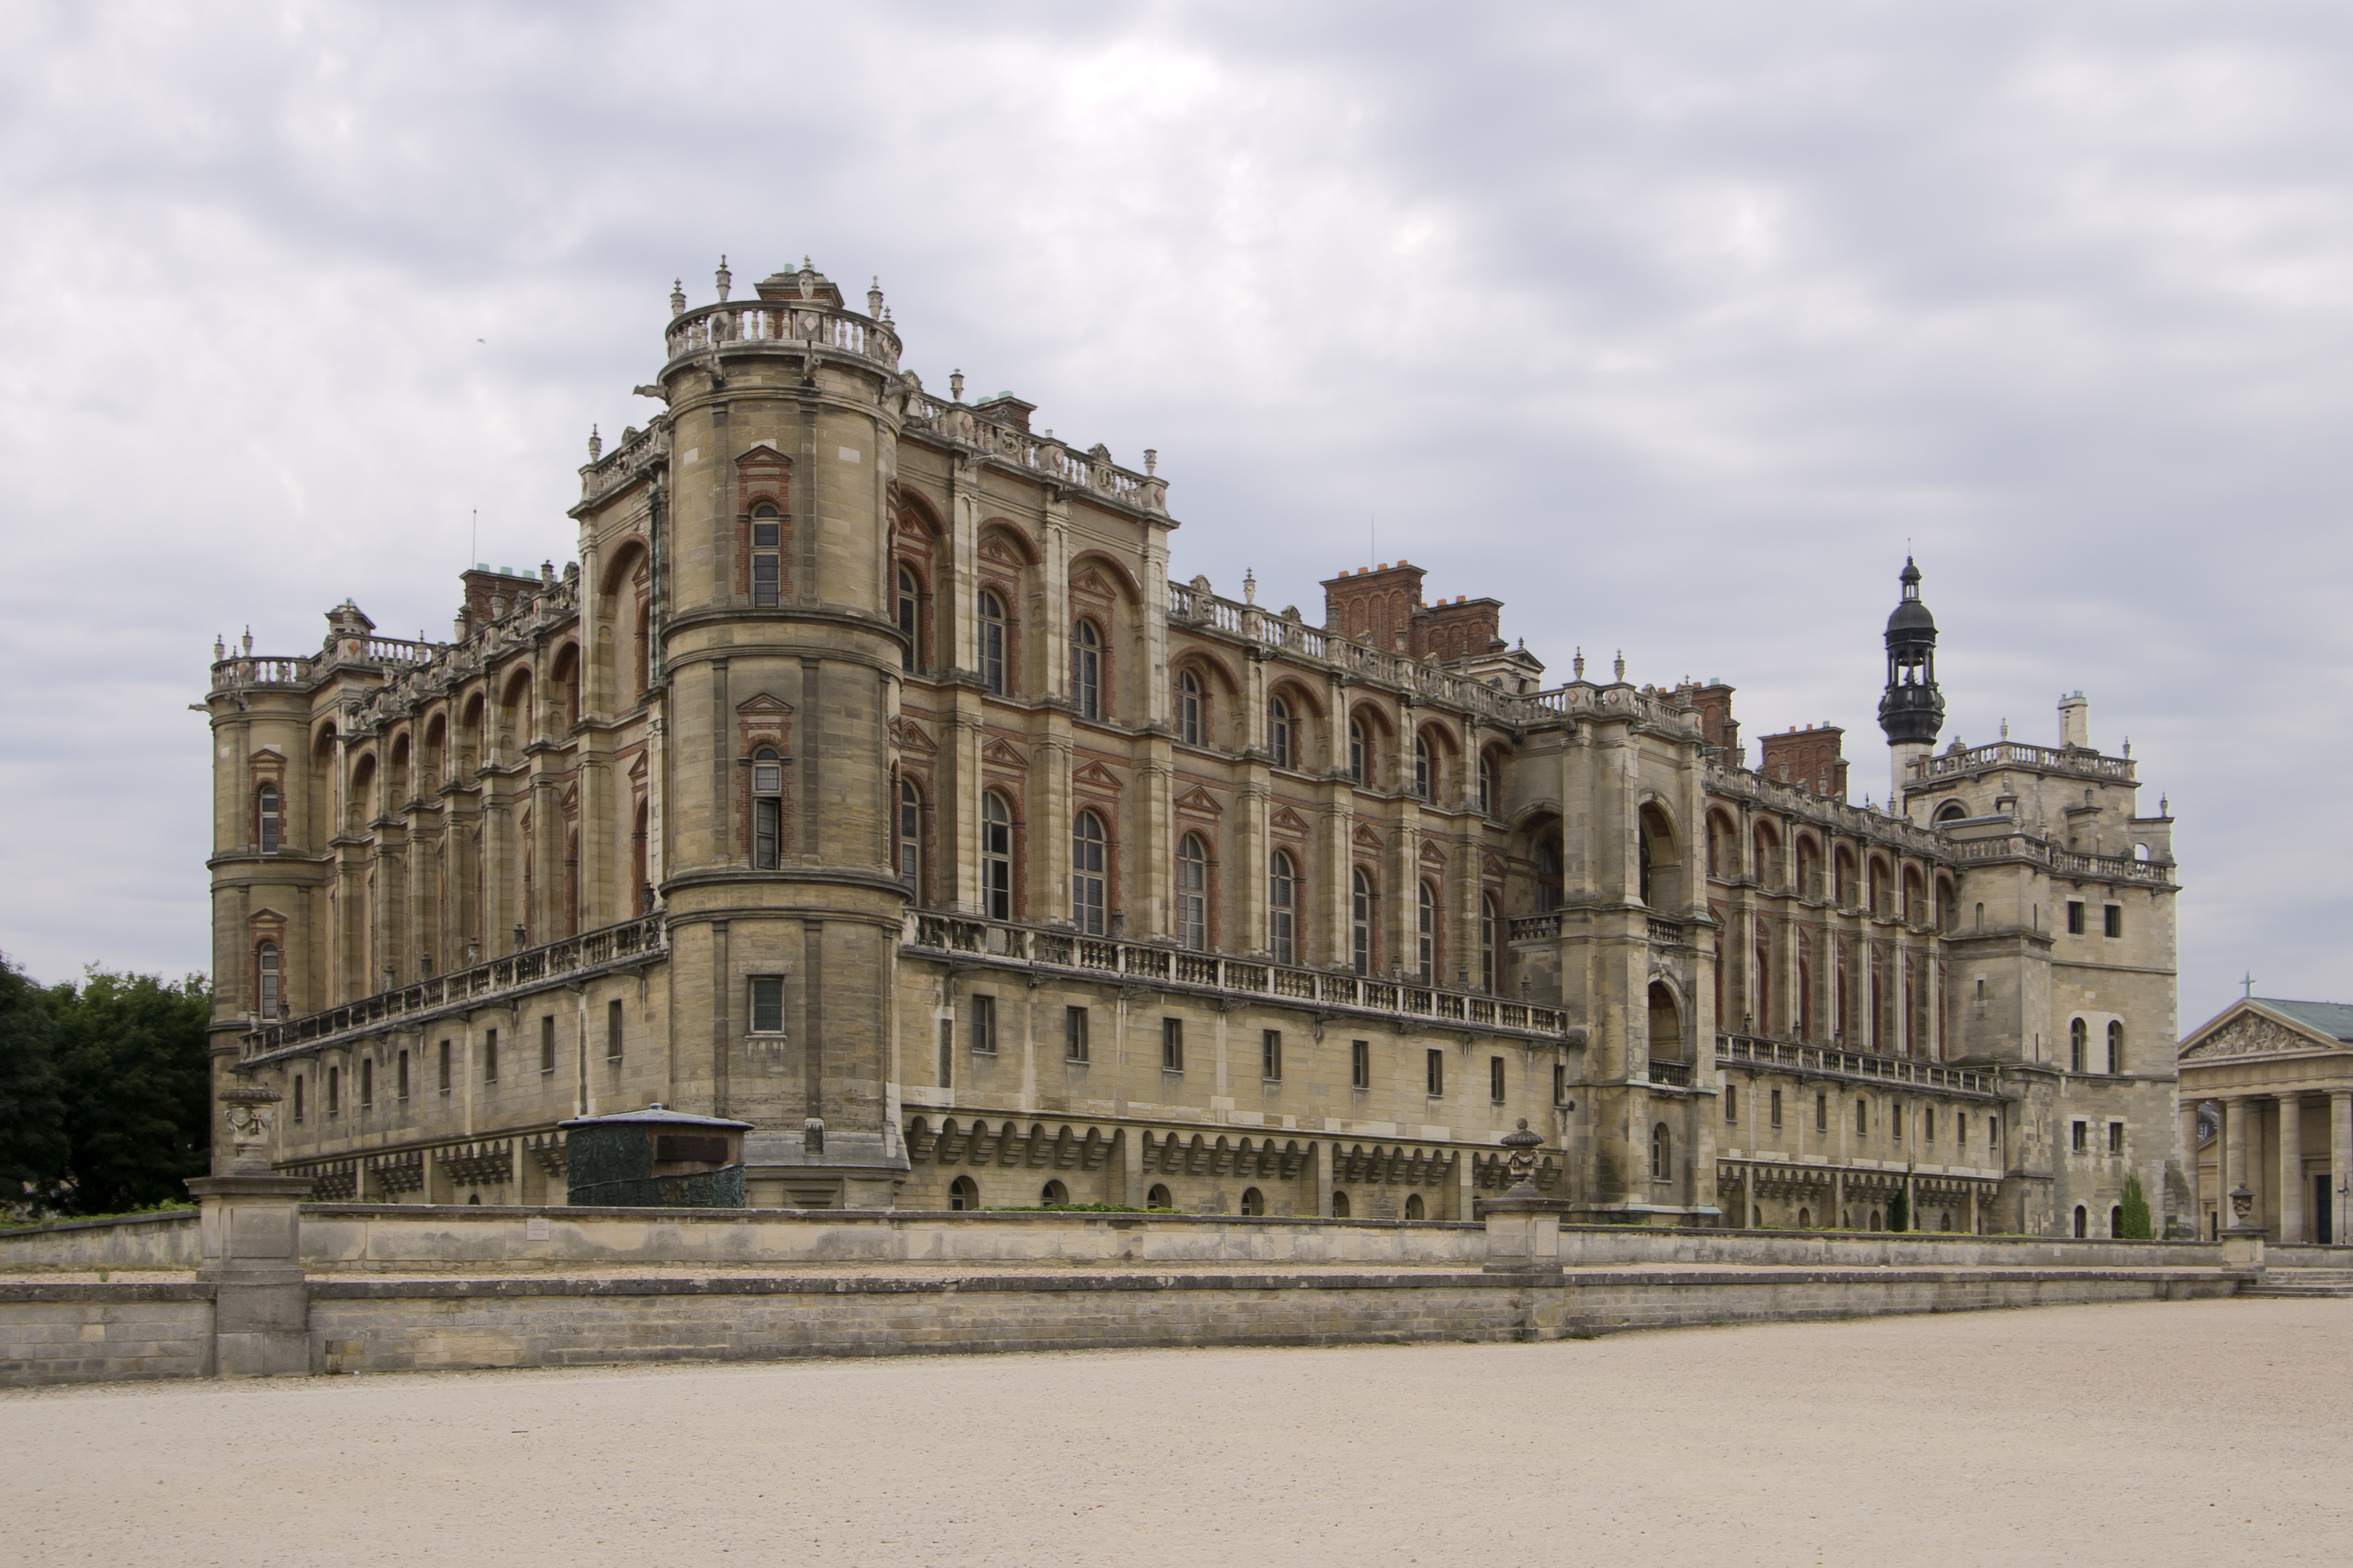 Discovering Saint-Germain-en-Laye, an absolute must